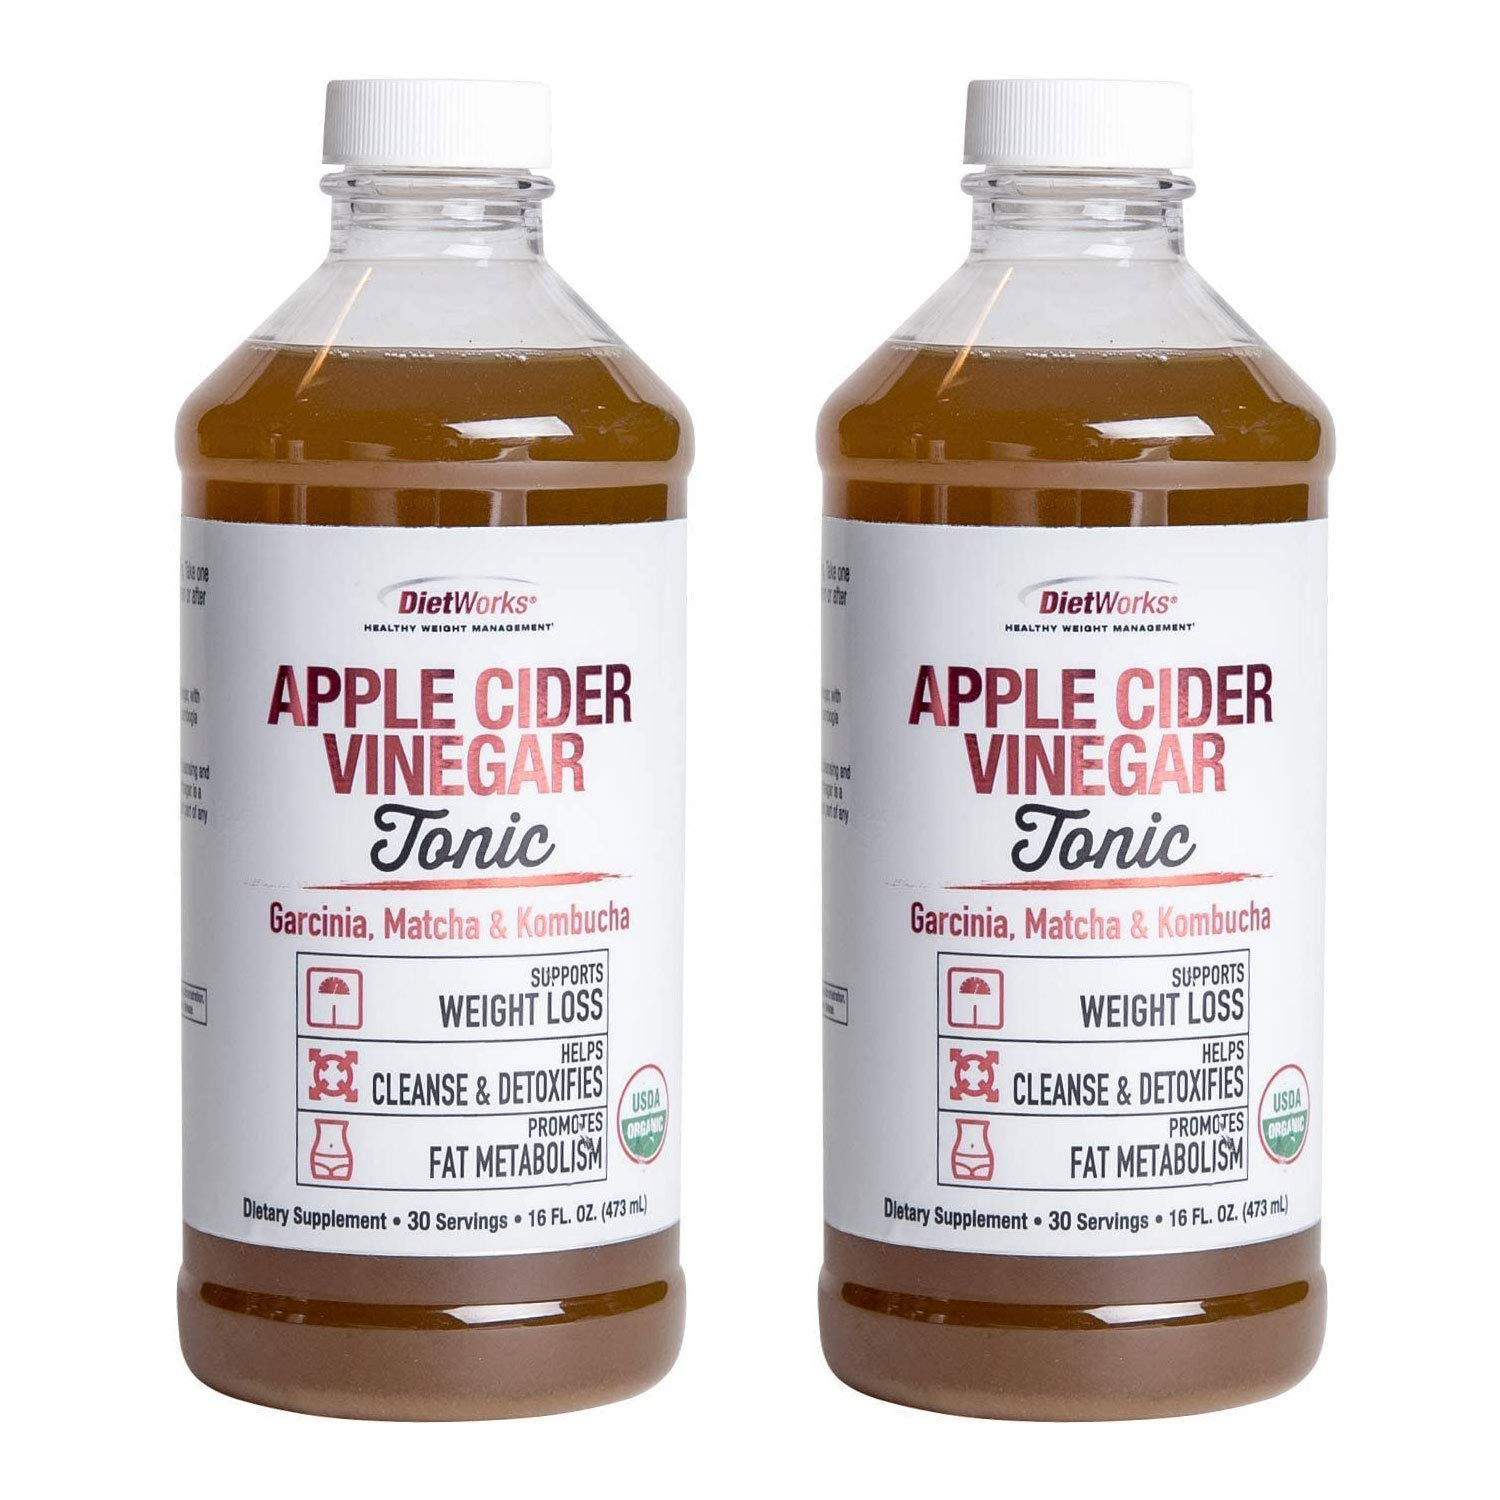 Dietworks Apple Cider Vinegar Liquid Tonic with Garcinia, Match and Kombucha - Natural Cleanse & Detox -16 fl oz each (Pack of 2)